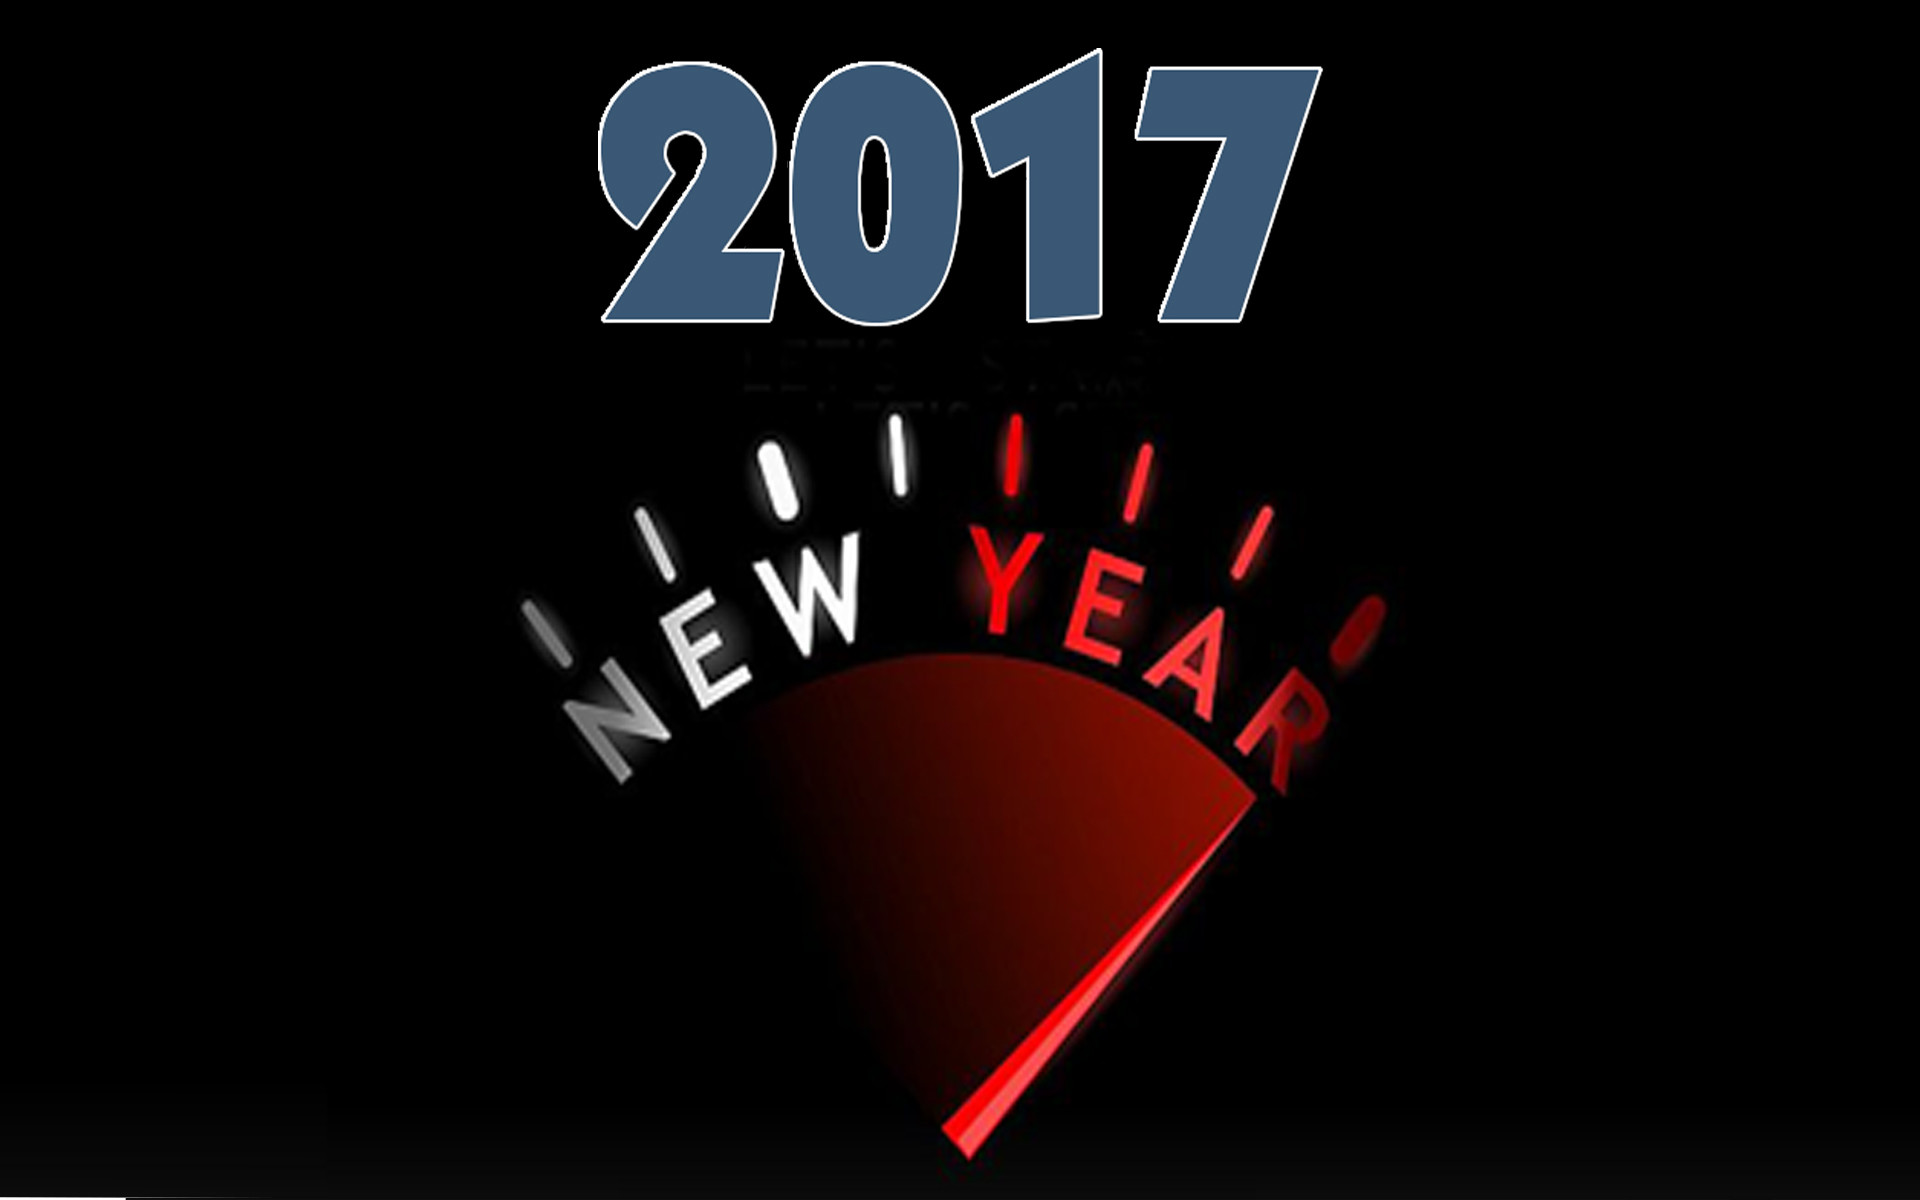 Download – New Year Image for Whatsapp DP, Profile Pic